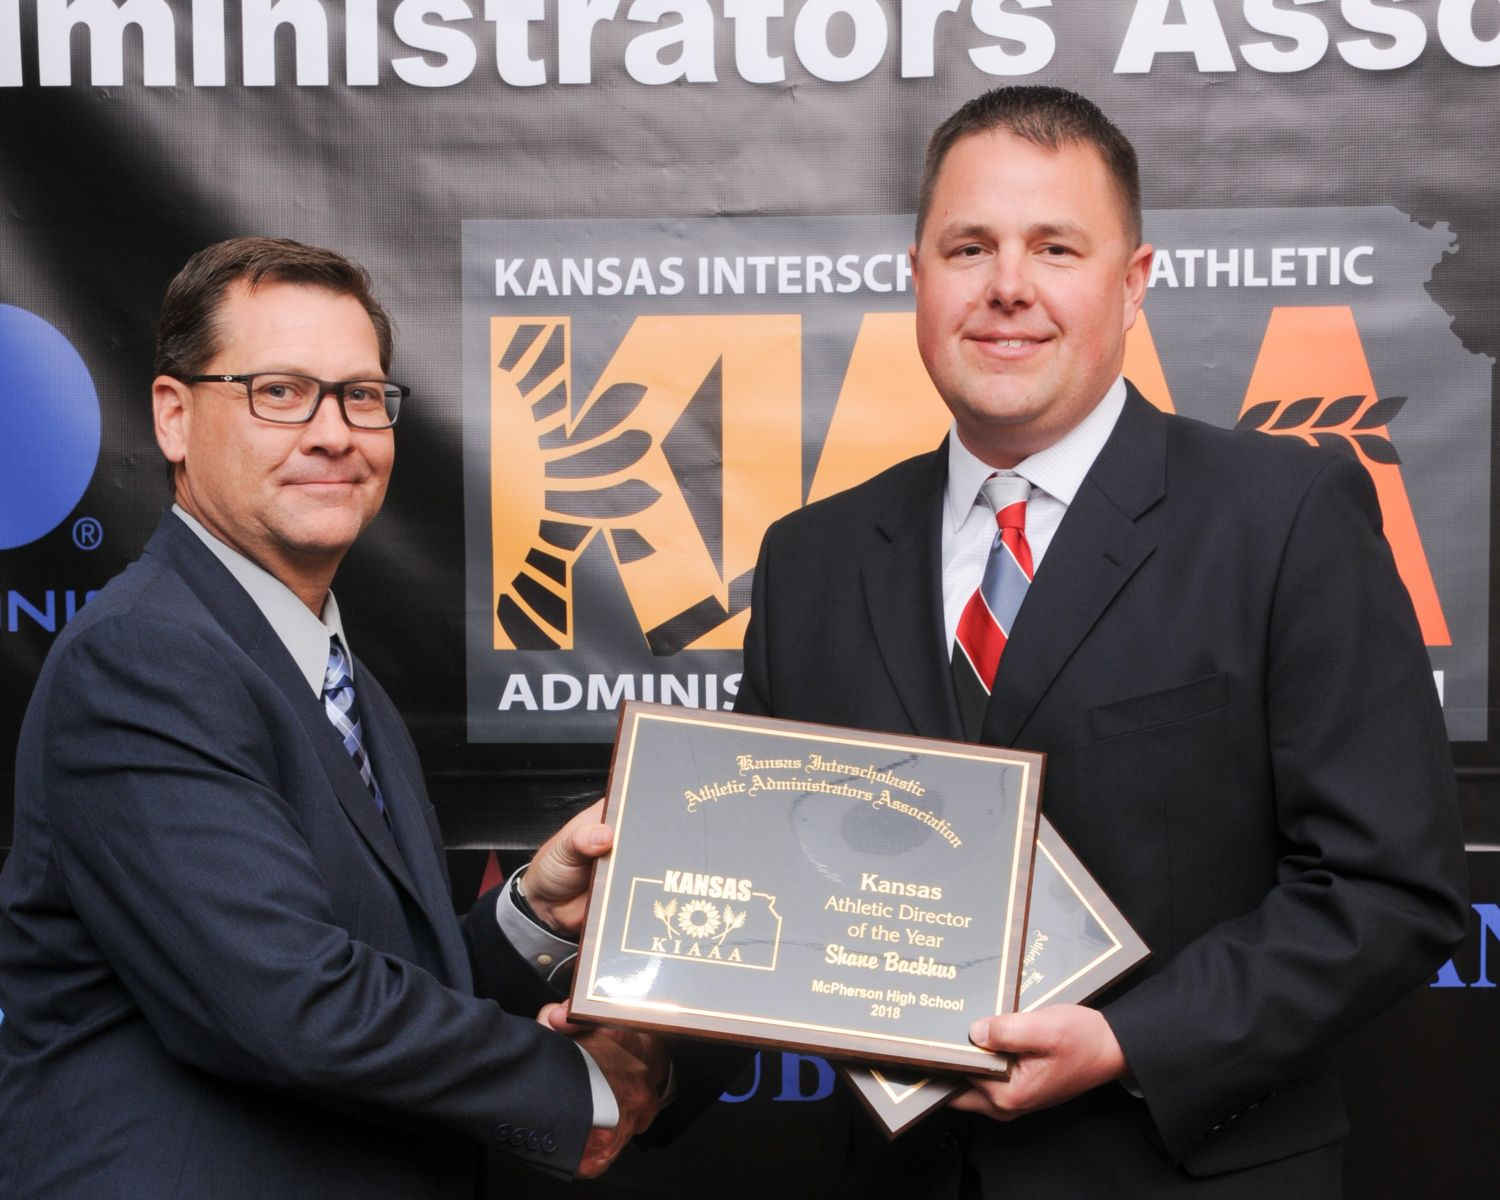 Shane Backhus - District 1 and AD of the Year